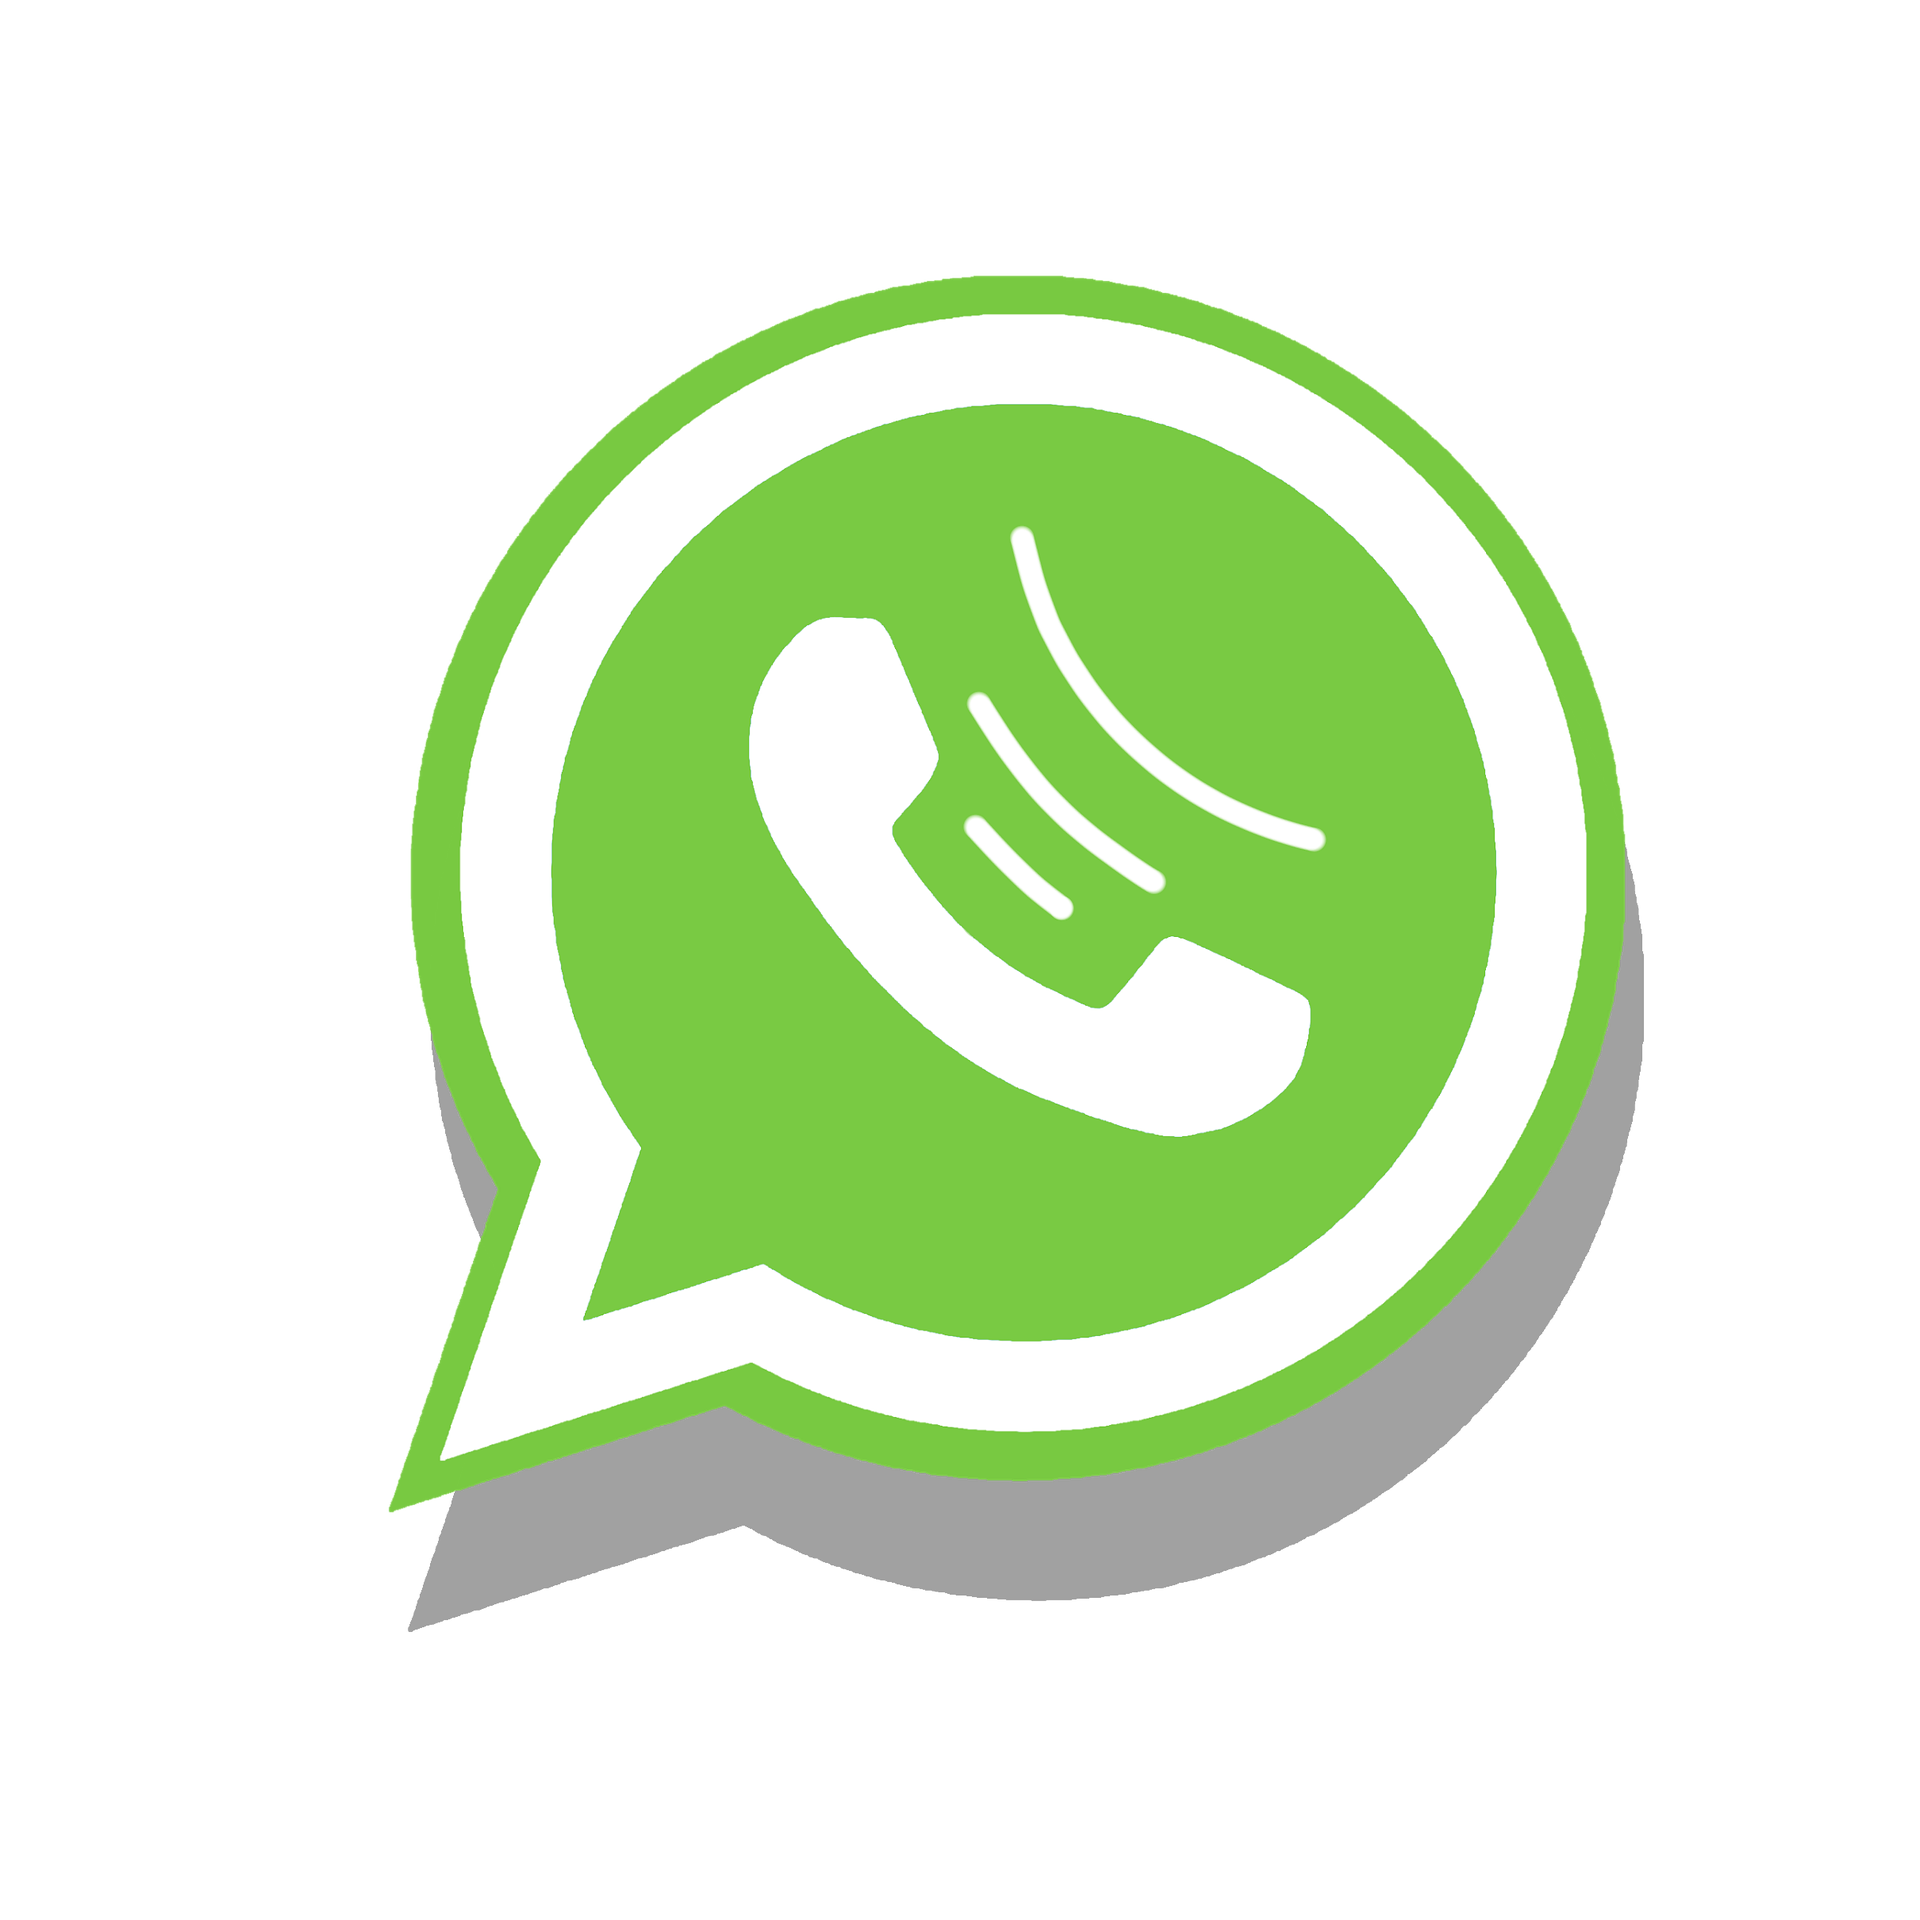 Ideasonthefloor Whatsapp chat